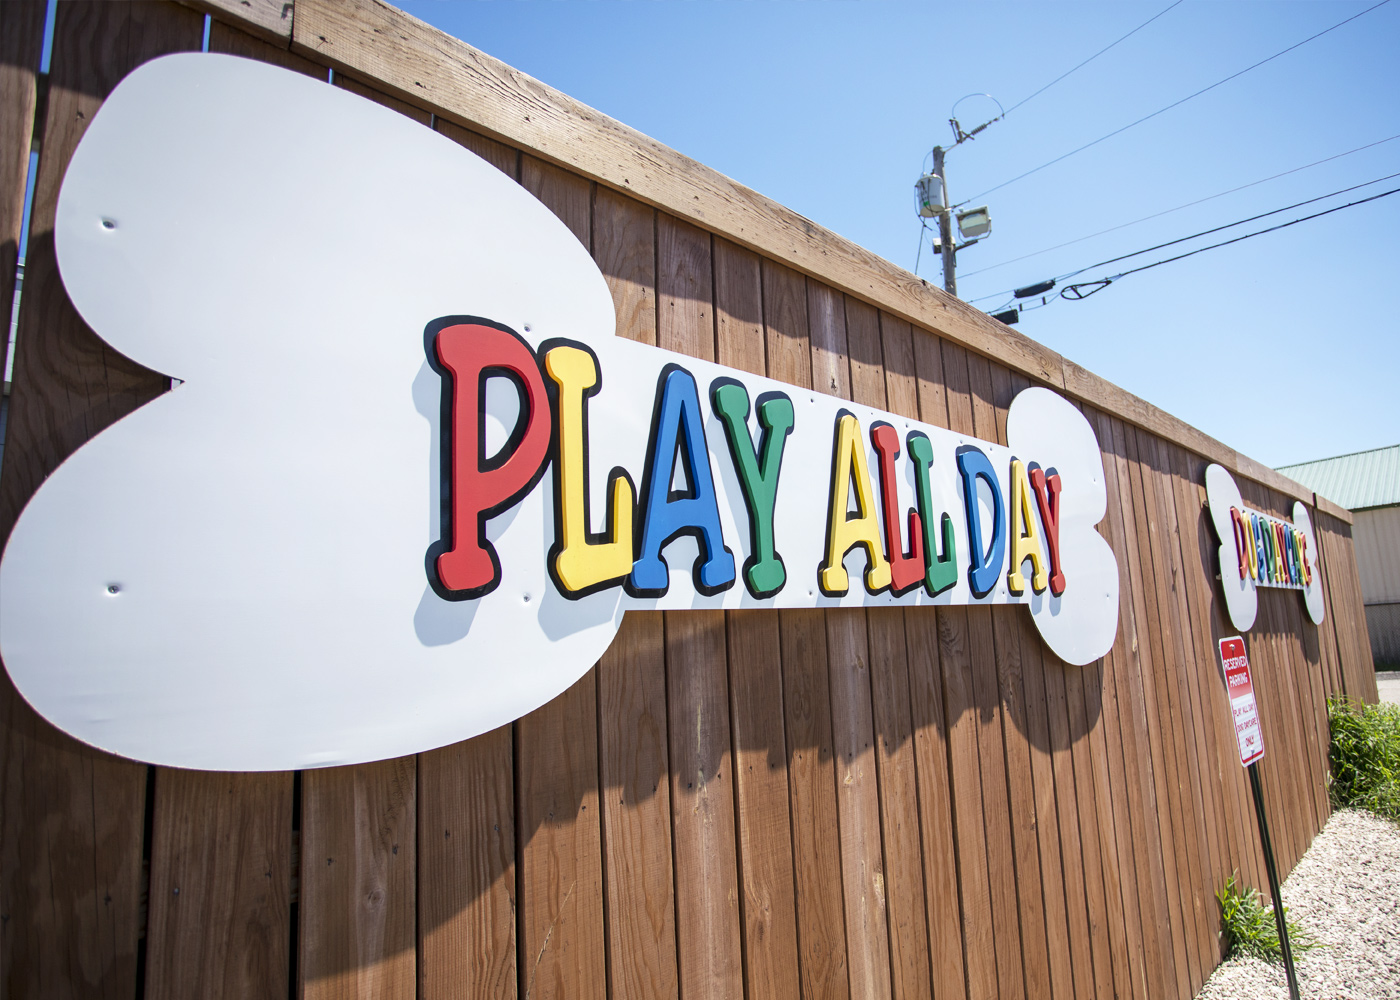 portsmouth nh play all day doggy daycare. Black Bedroom Furniture Sets. Home Design Ideas